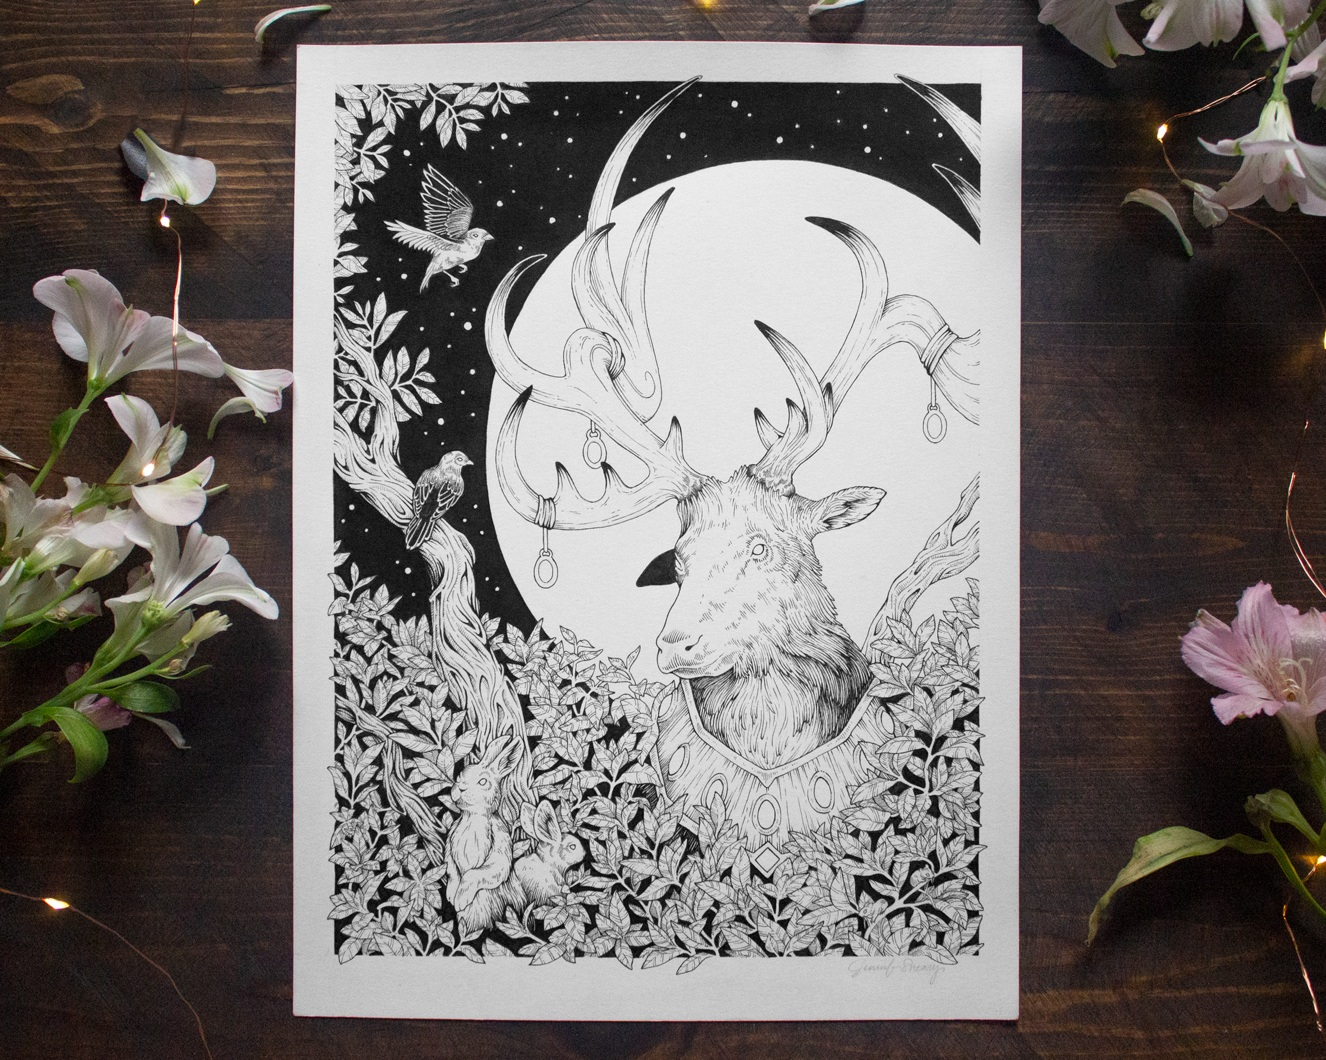 Jenn Sneary Illustration, Moonlight, Pen and Ink drawings